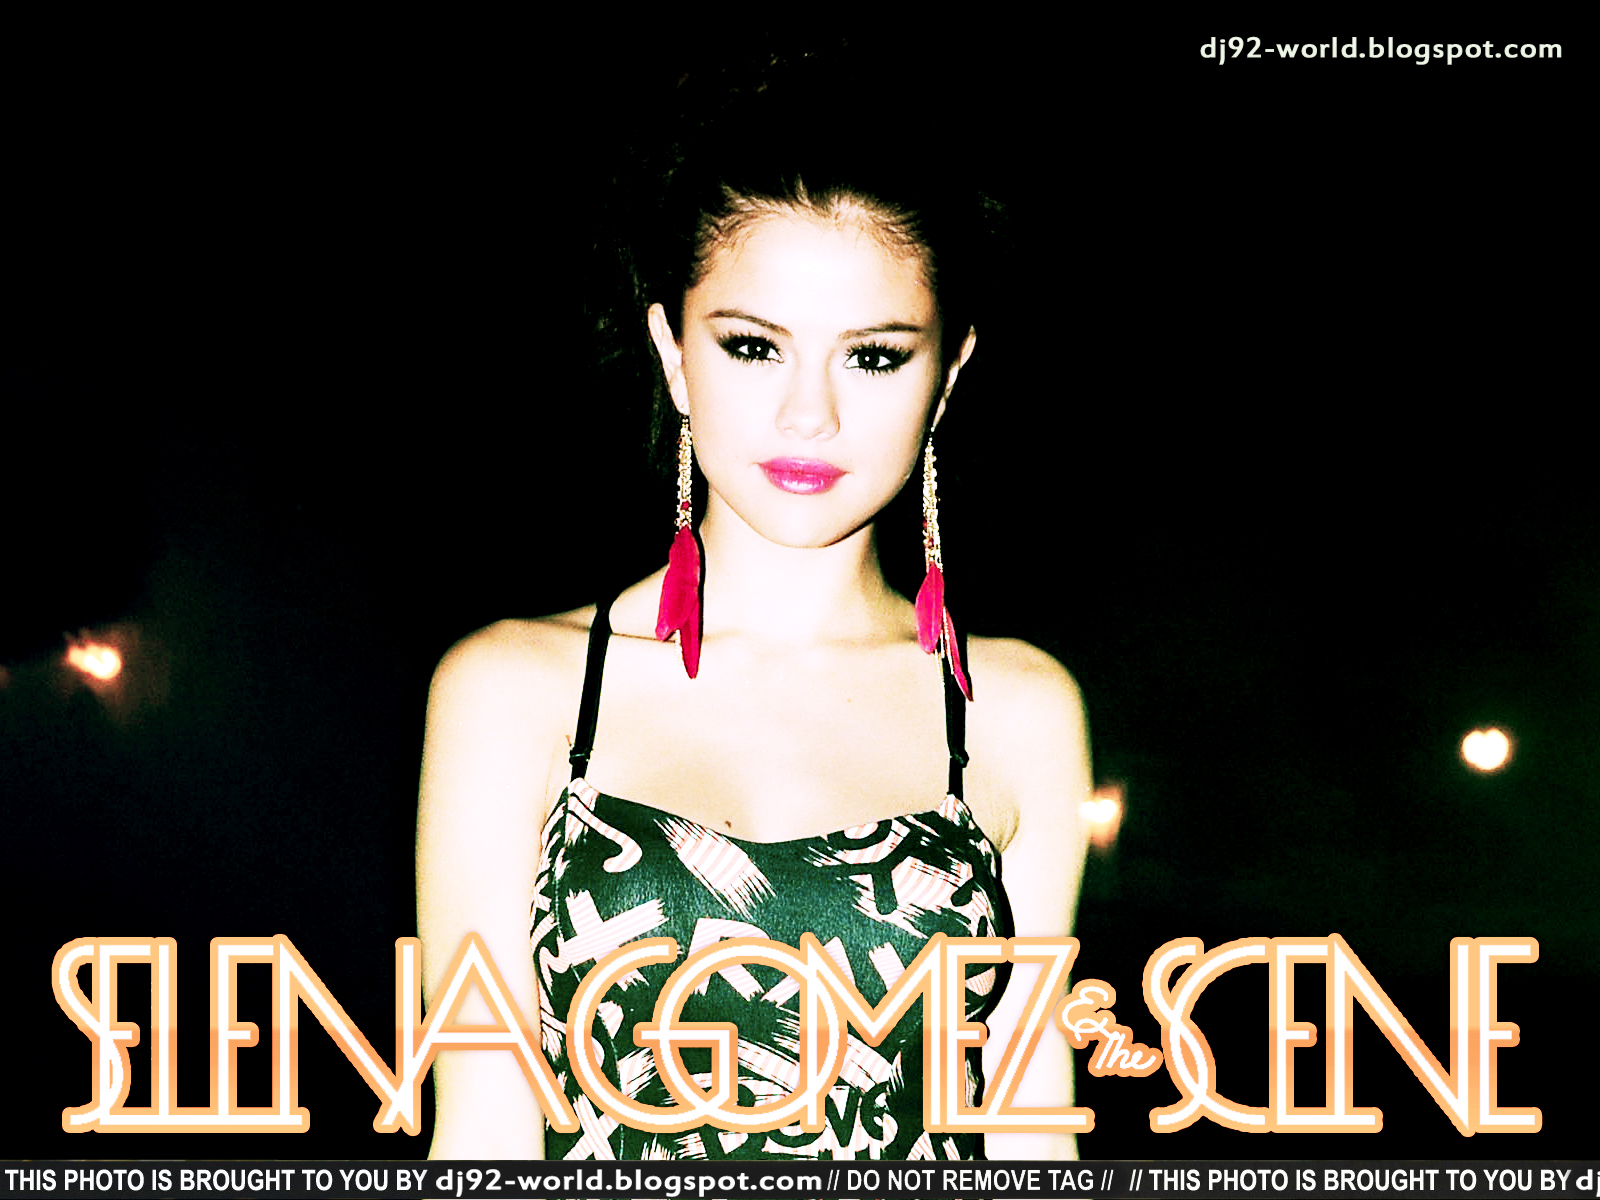 Selena Gomez Wallpapers -Sel-by-Dave-Latest-Wallpapers-selena-gomez-27861498-1600-1200